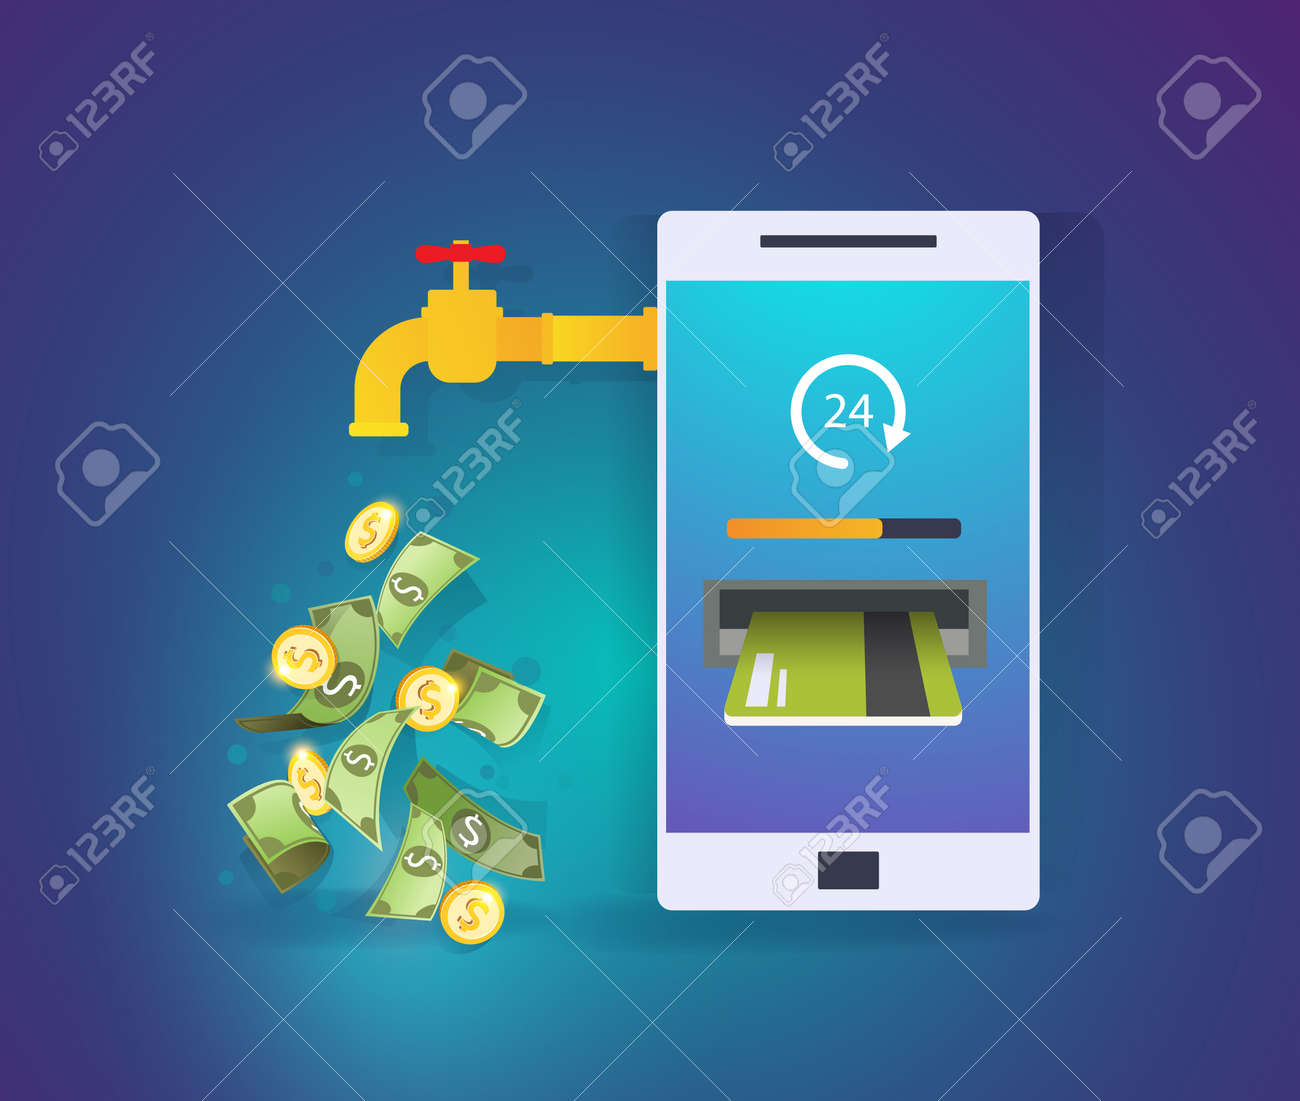 Smartphone with credit card and cash. Mobile banking application. Online payment, cash transaction, passive income concept. Business Vector Illustration - 162664048